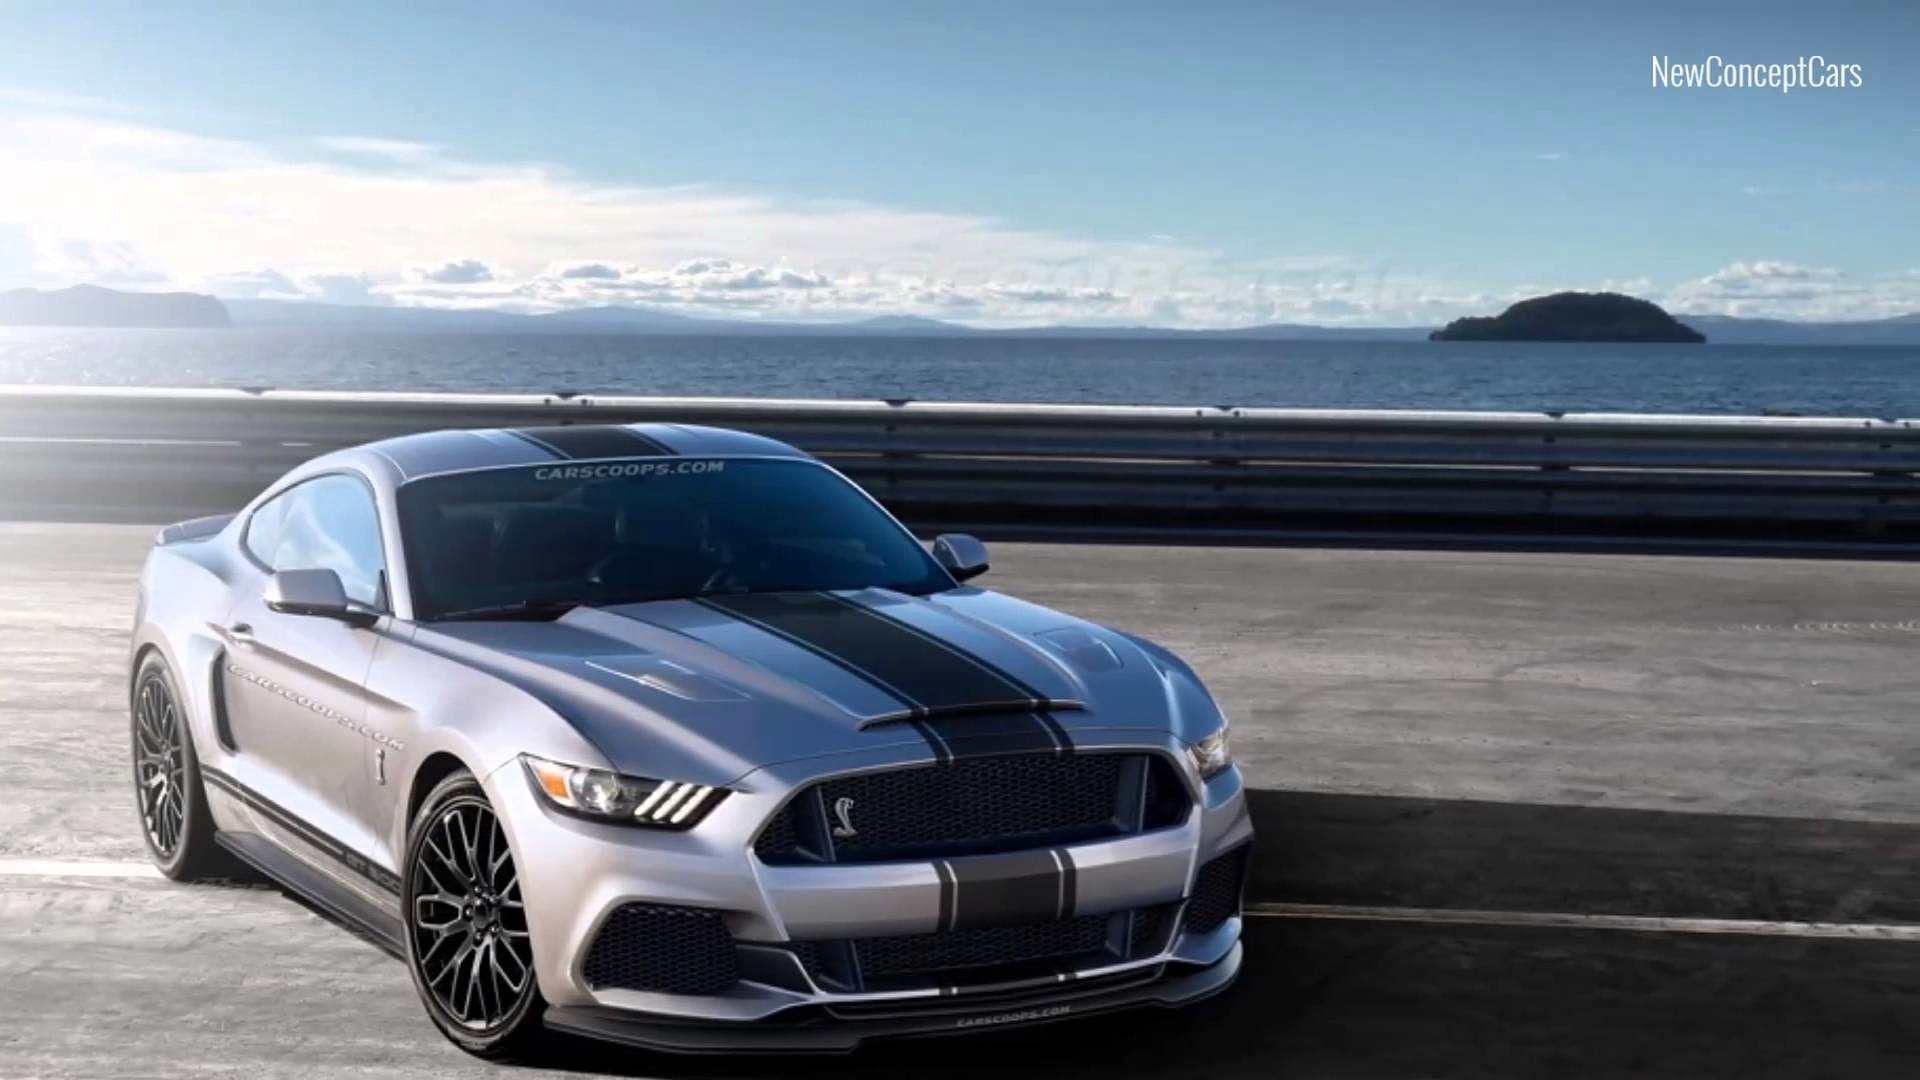 1920x1080 2016 Ford Mustang Shelby GT500 Review | 2016 - 2018 Future cars .